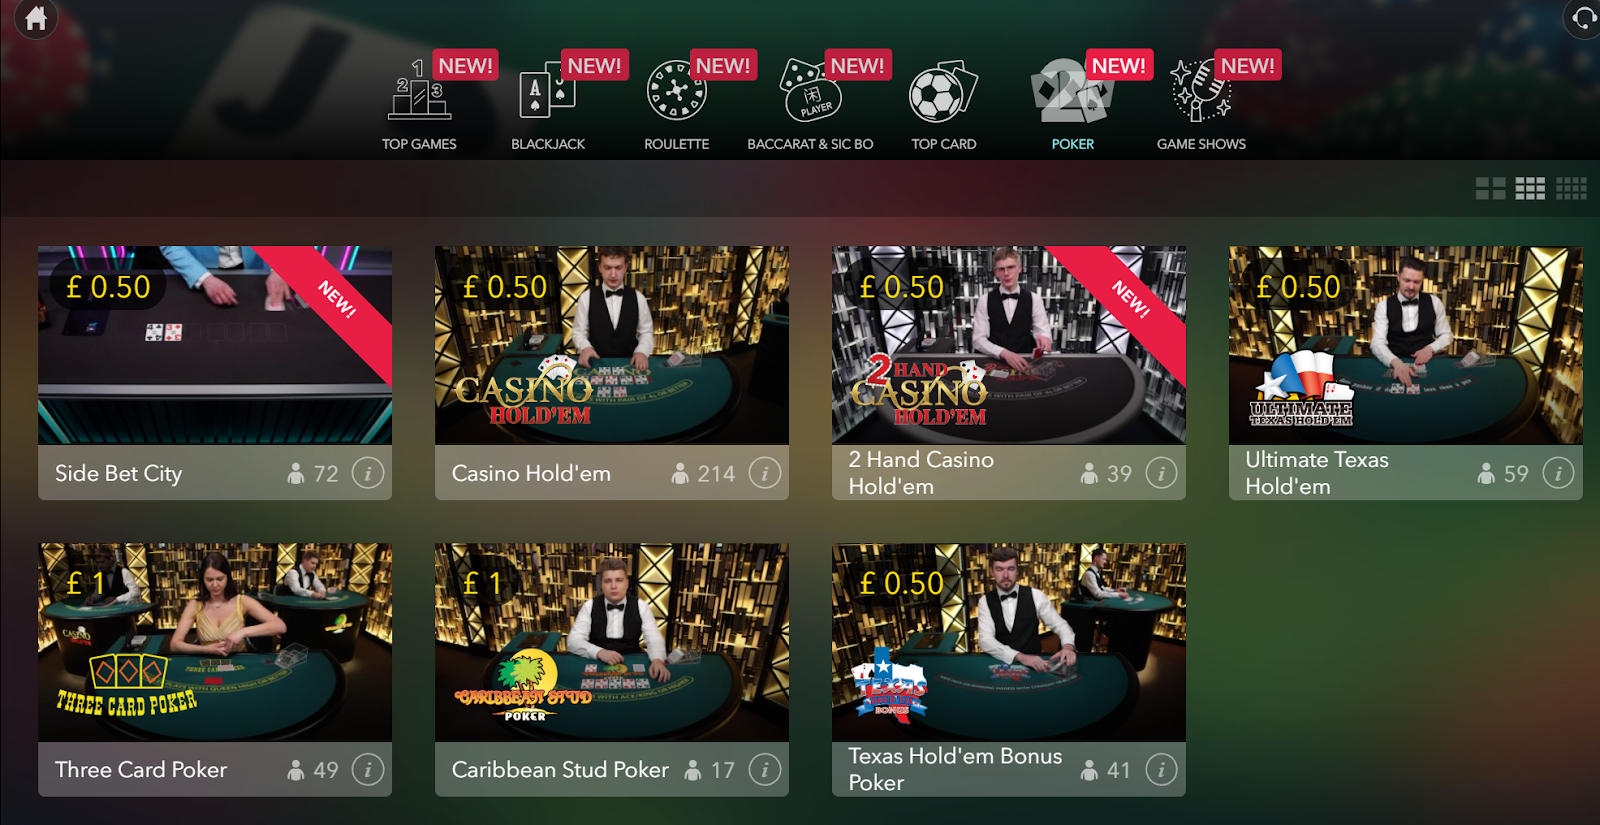 Casino Gods has loads of excellent poker games you can play